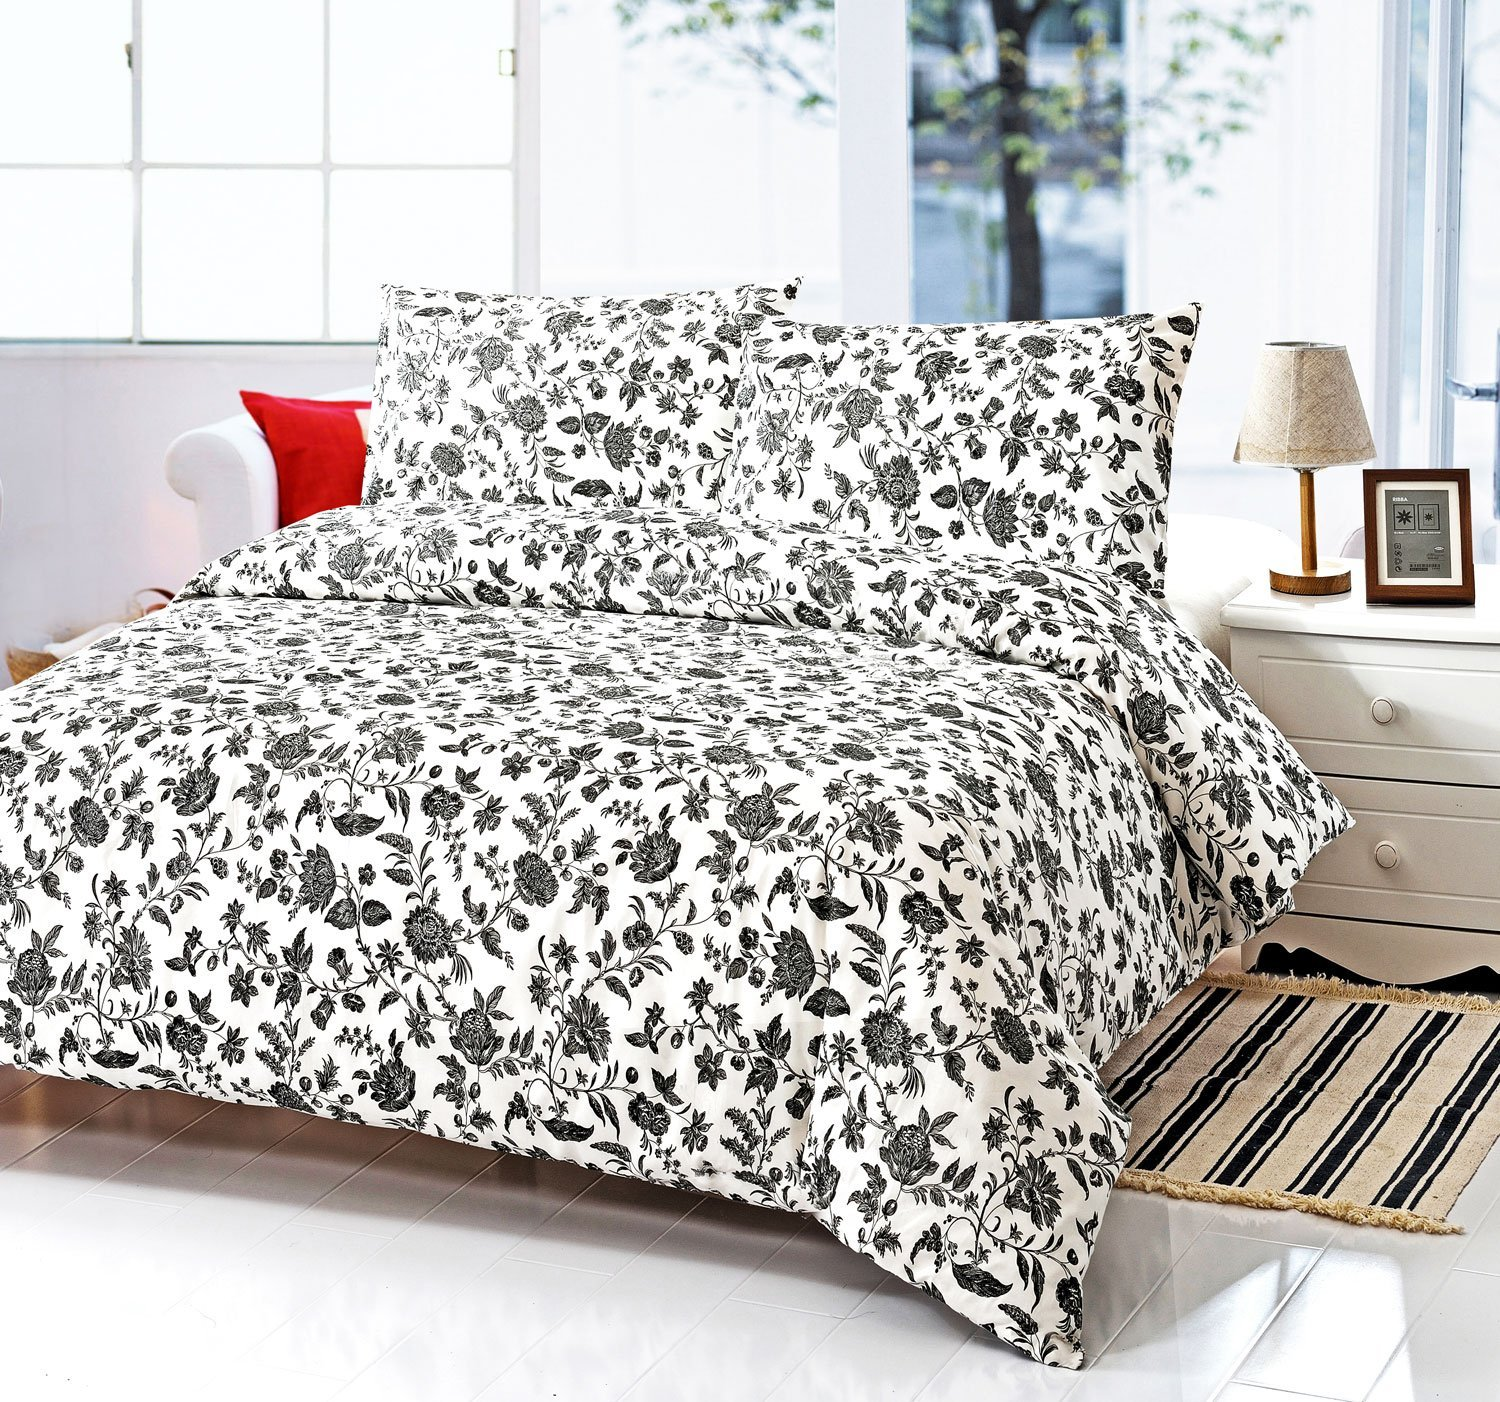 black white duvet covers